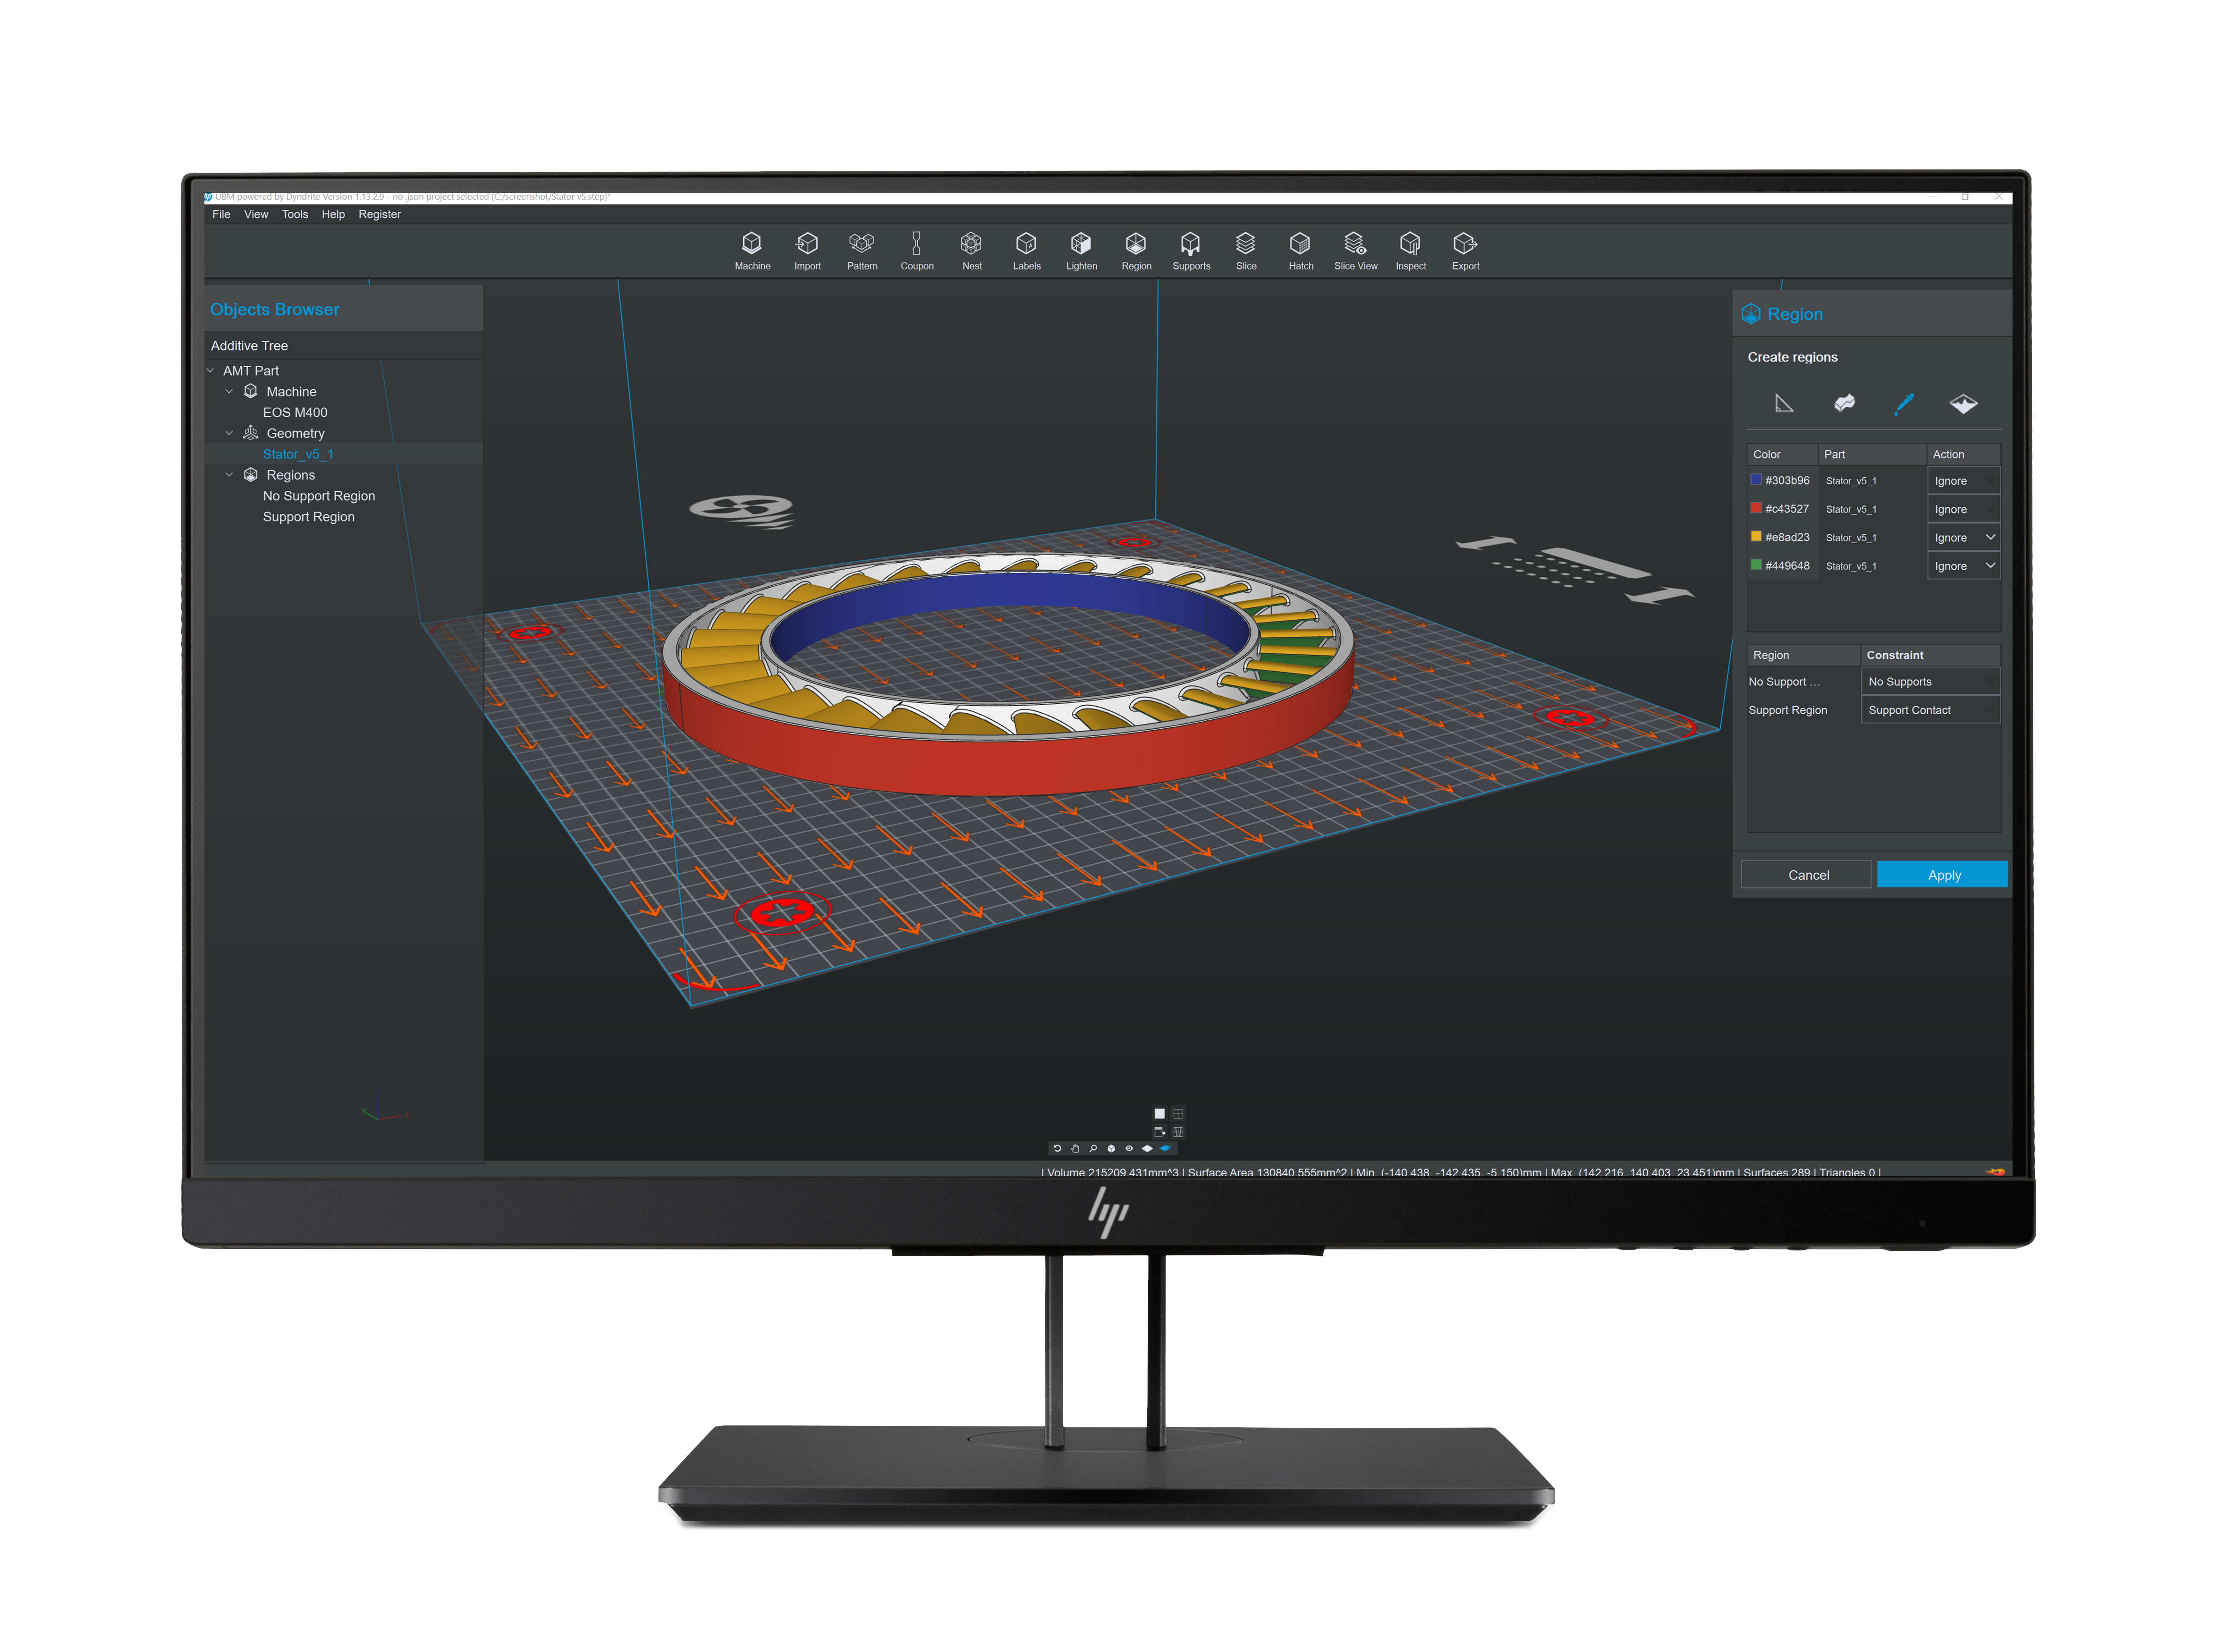 HP's Universal Build Manager leverages proprietary HP software and data innovation, combined with the Dyndrite Accelerated Geometry Engine. Image via HP.